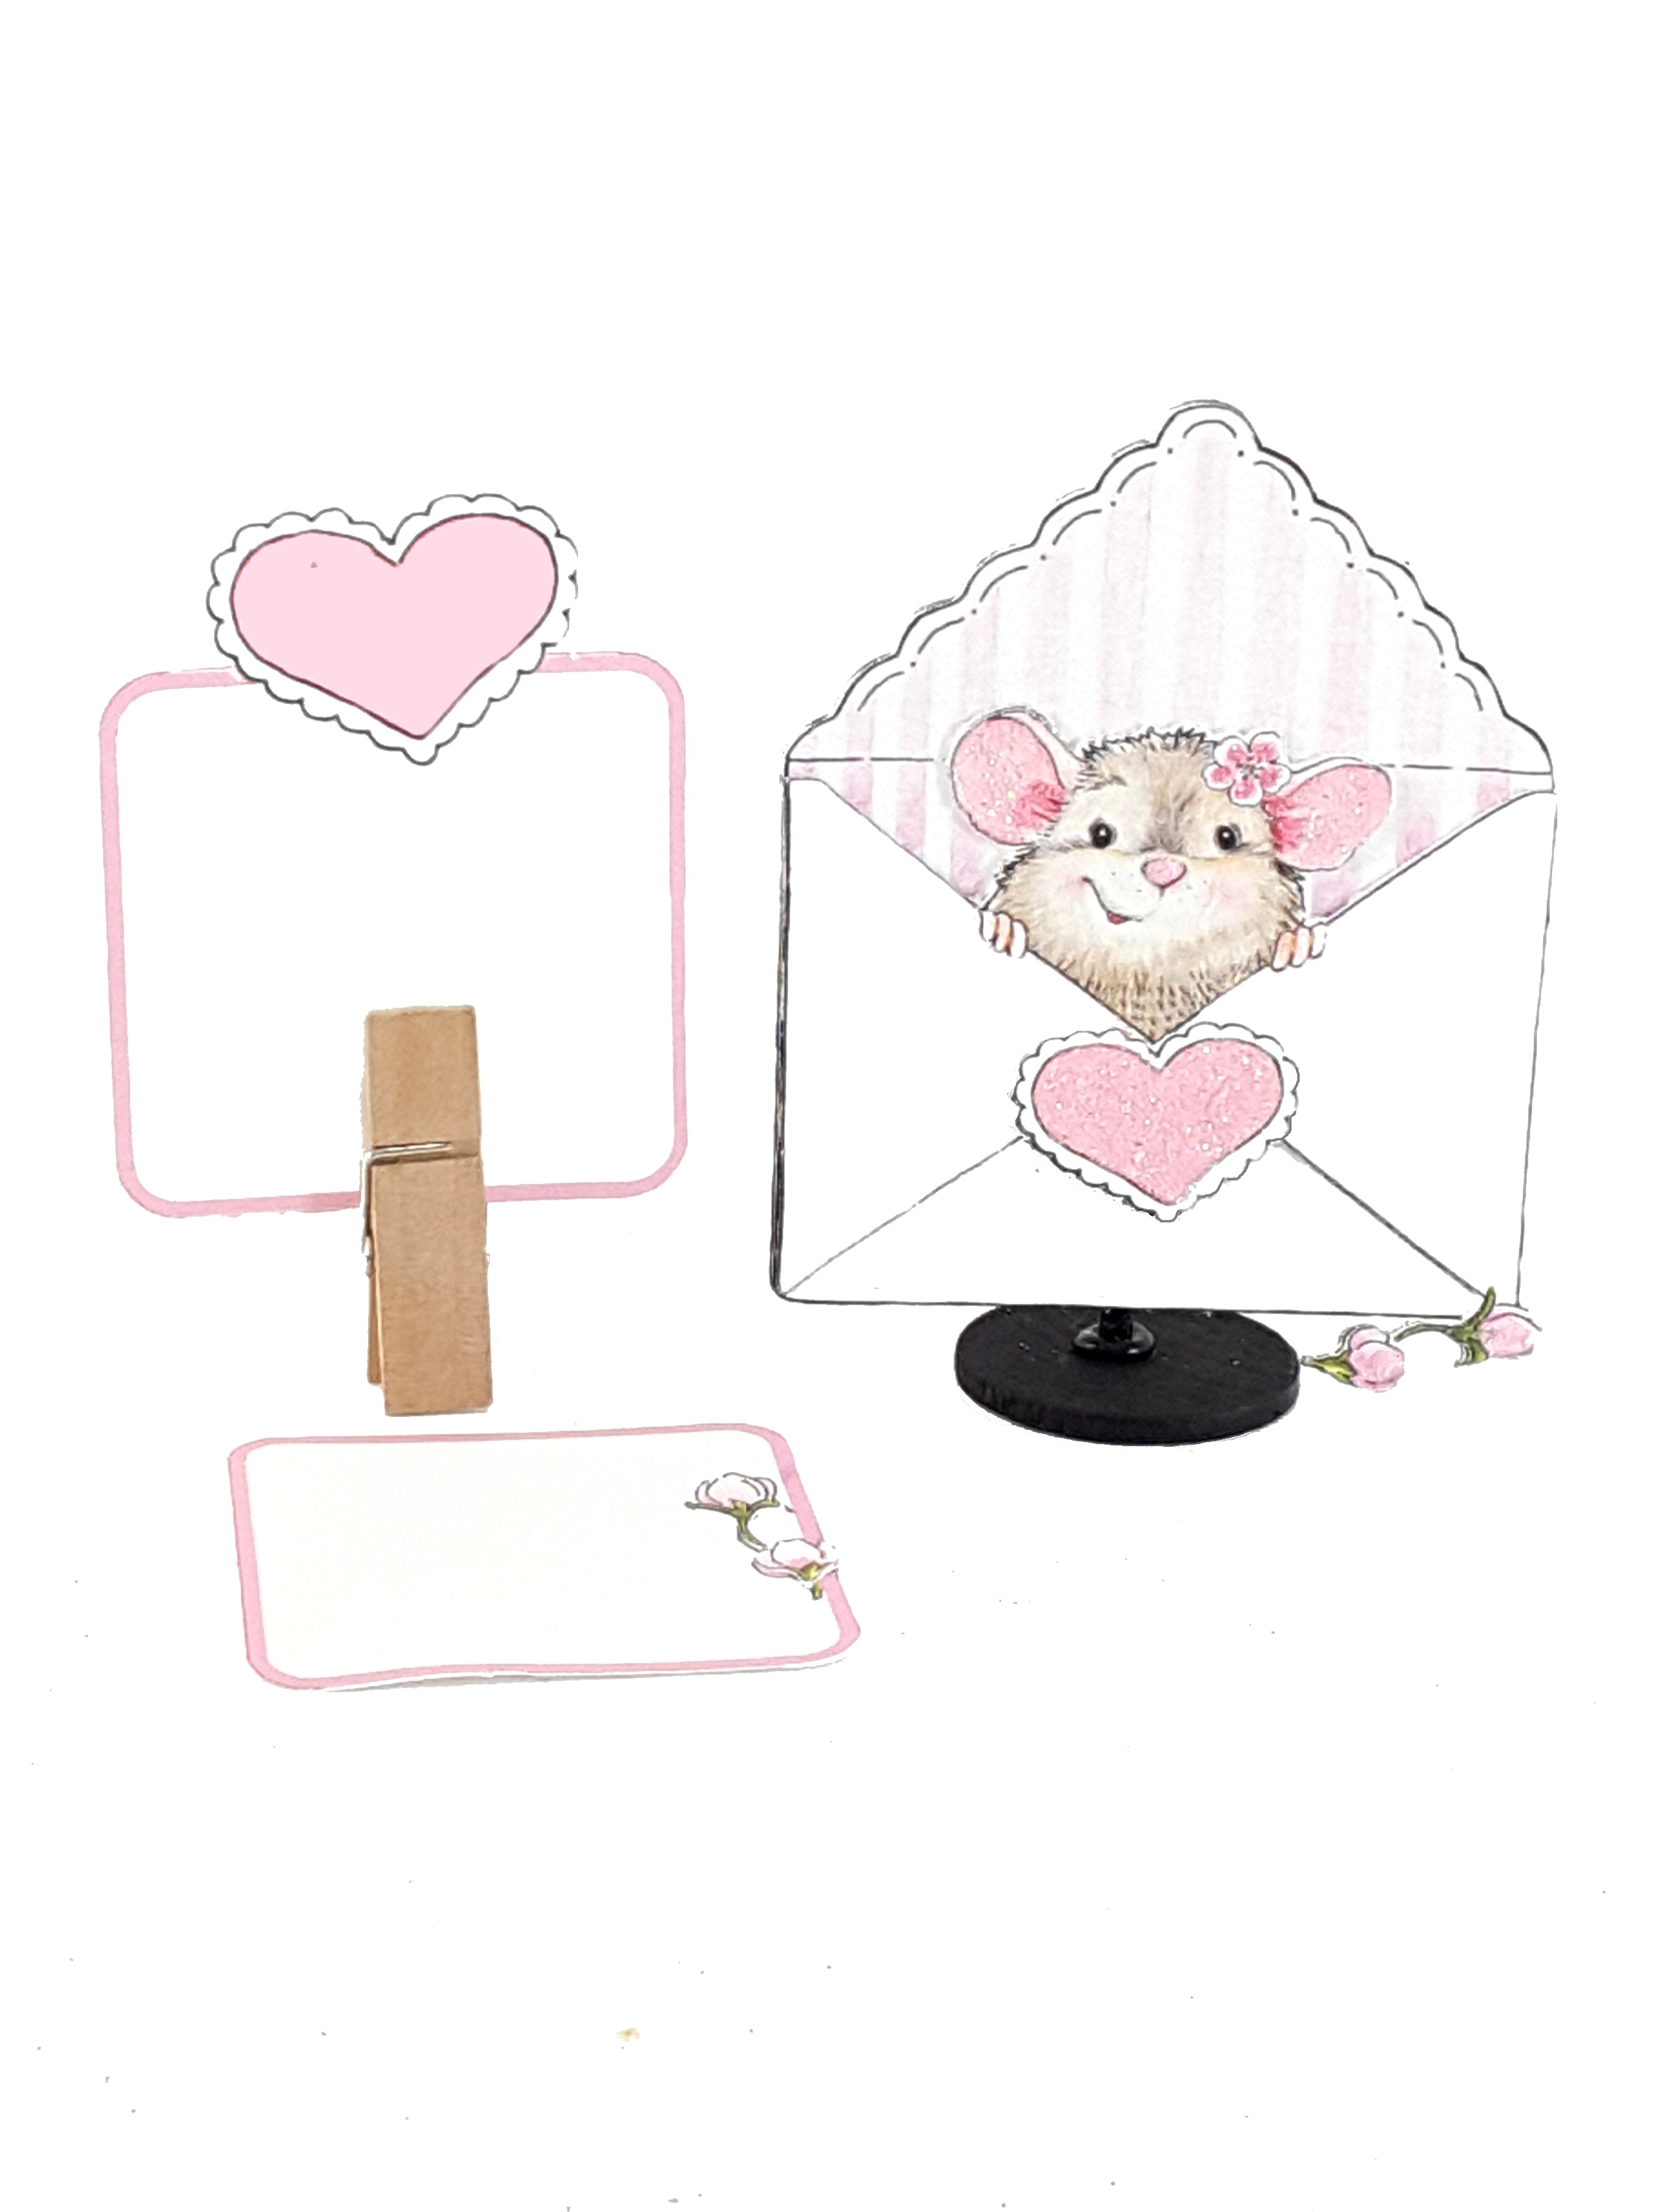 Adorable Valentine's Day Pop Up Greeting Card with Mouse in an Envelope - The Last Word Bish